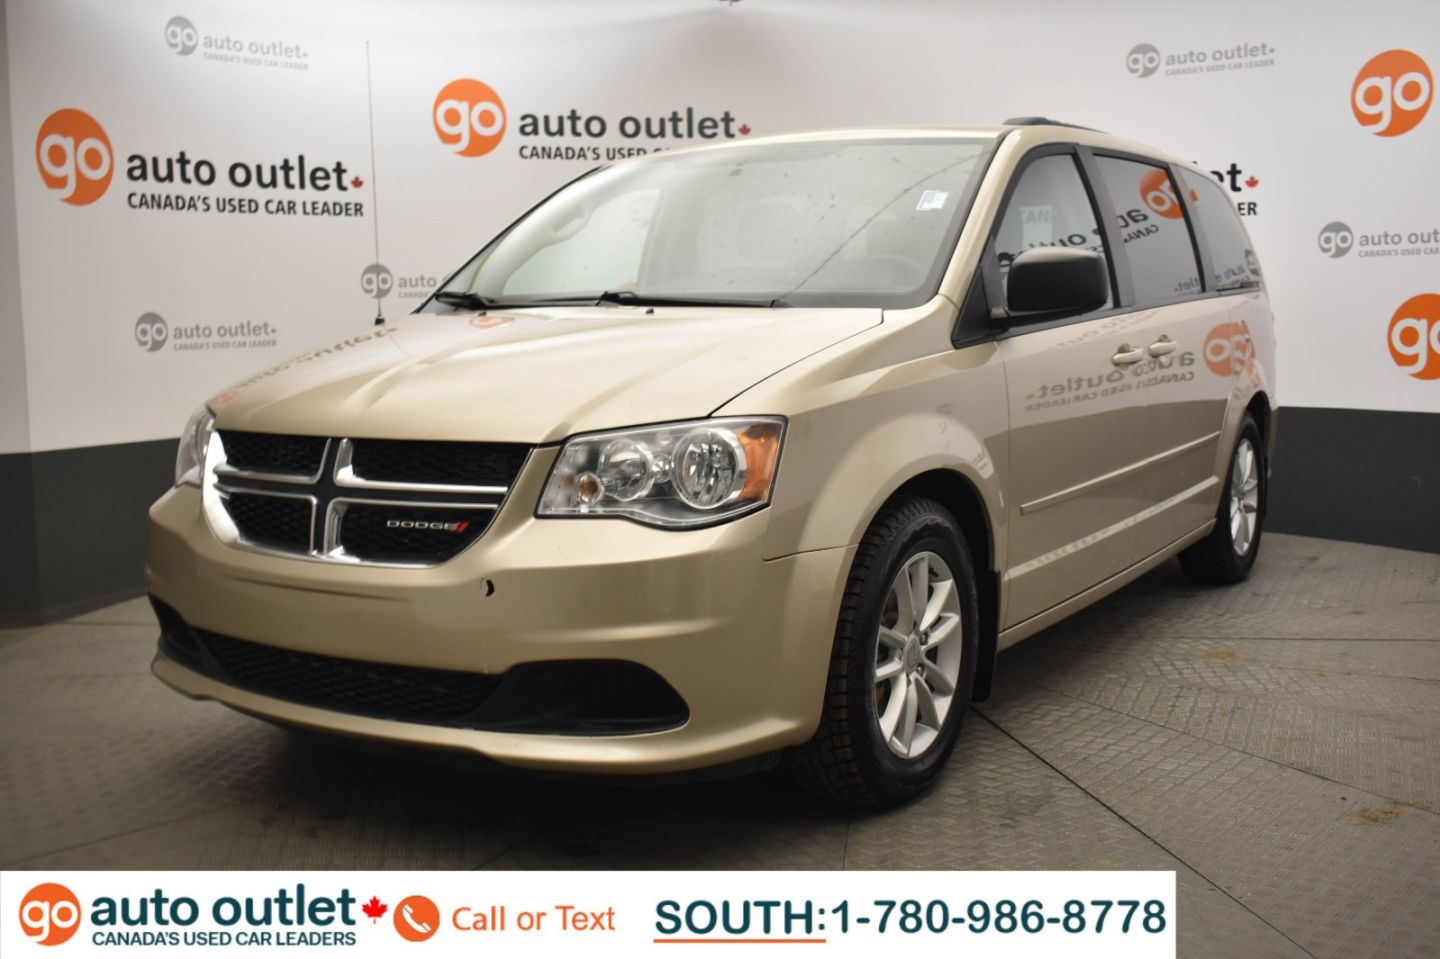 2015 Dodge Grand Caravan SXT for sale in Leduc, Alberta